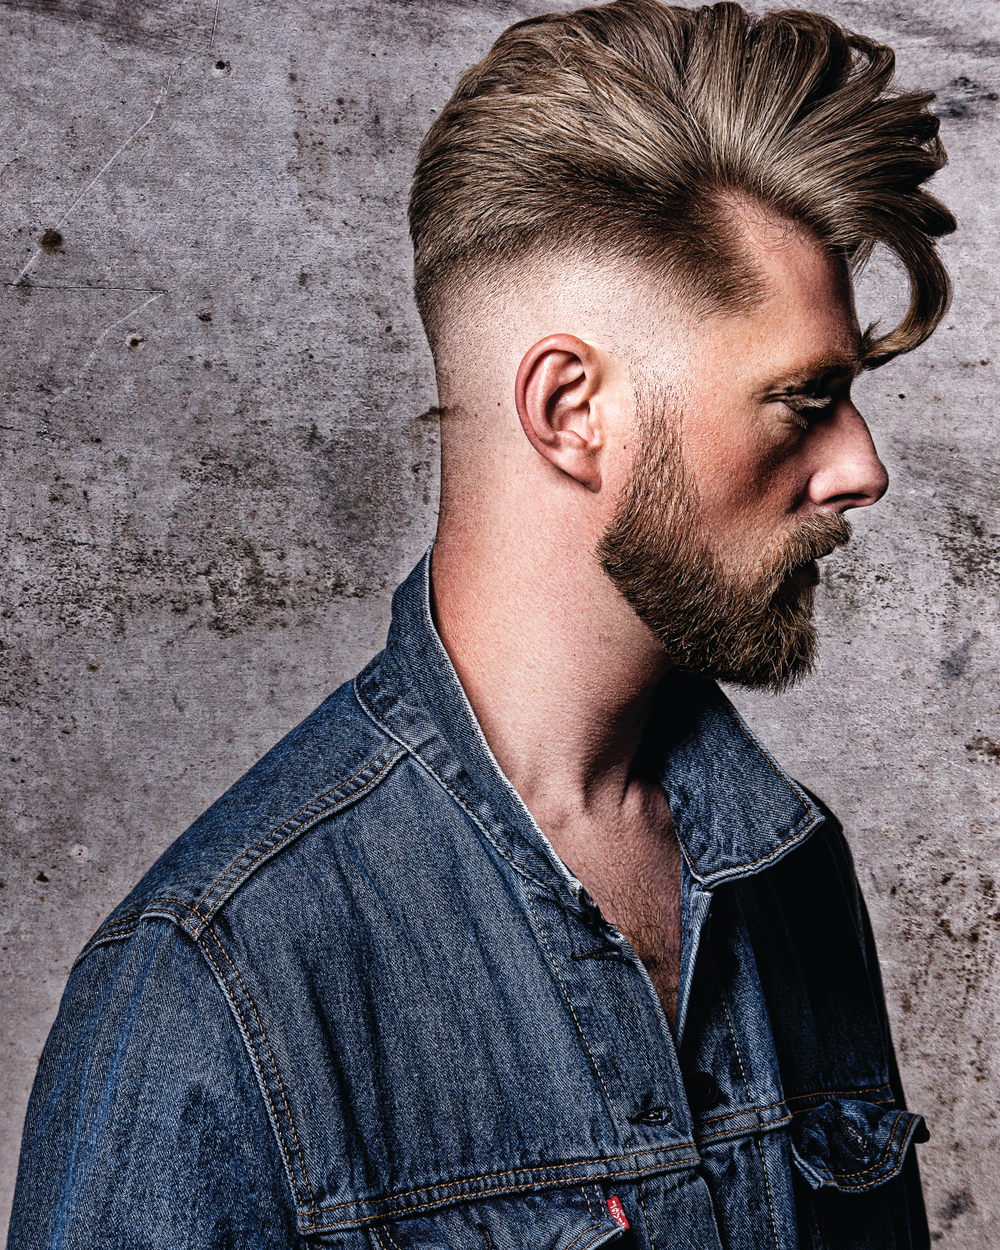 <p>Maximum Movement: ANDREW</p>  <p>With lots of movement, Bustos was inspired by the flow of water for this look. He began with a skin-tight short blend with a heavier weight line following the model&rsquo;s head shape. The weight line starts from the brow bone, arching up and around the ear, and drops to the top of the occipital bone.The top length was cut with texture to help support the length. Thes horter lengths in the interior act as a support system to lift up the longer lengths with minimal product to ultimately create a natural waterfall-like flow in the style.</p>